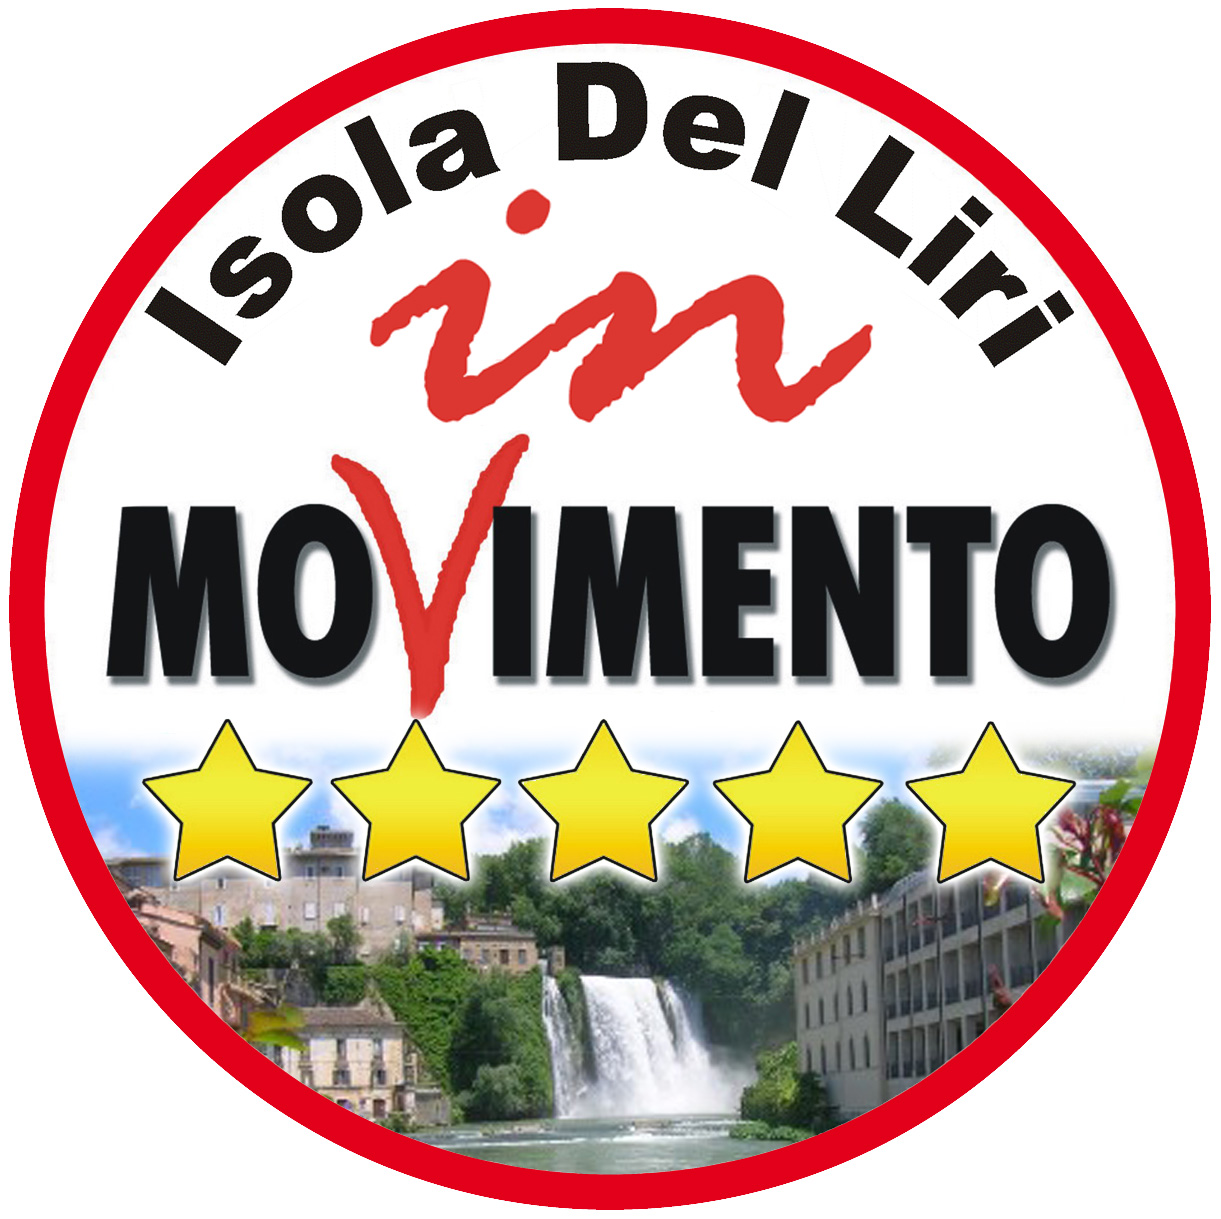 Isola in movimento